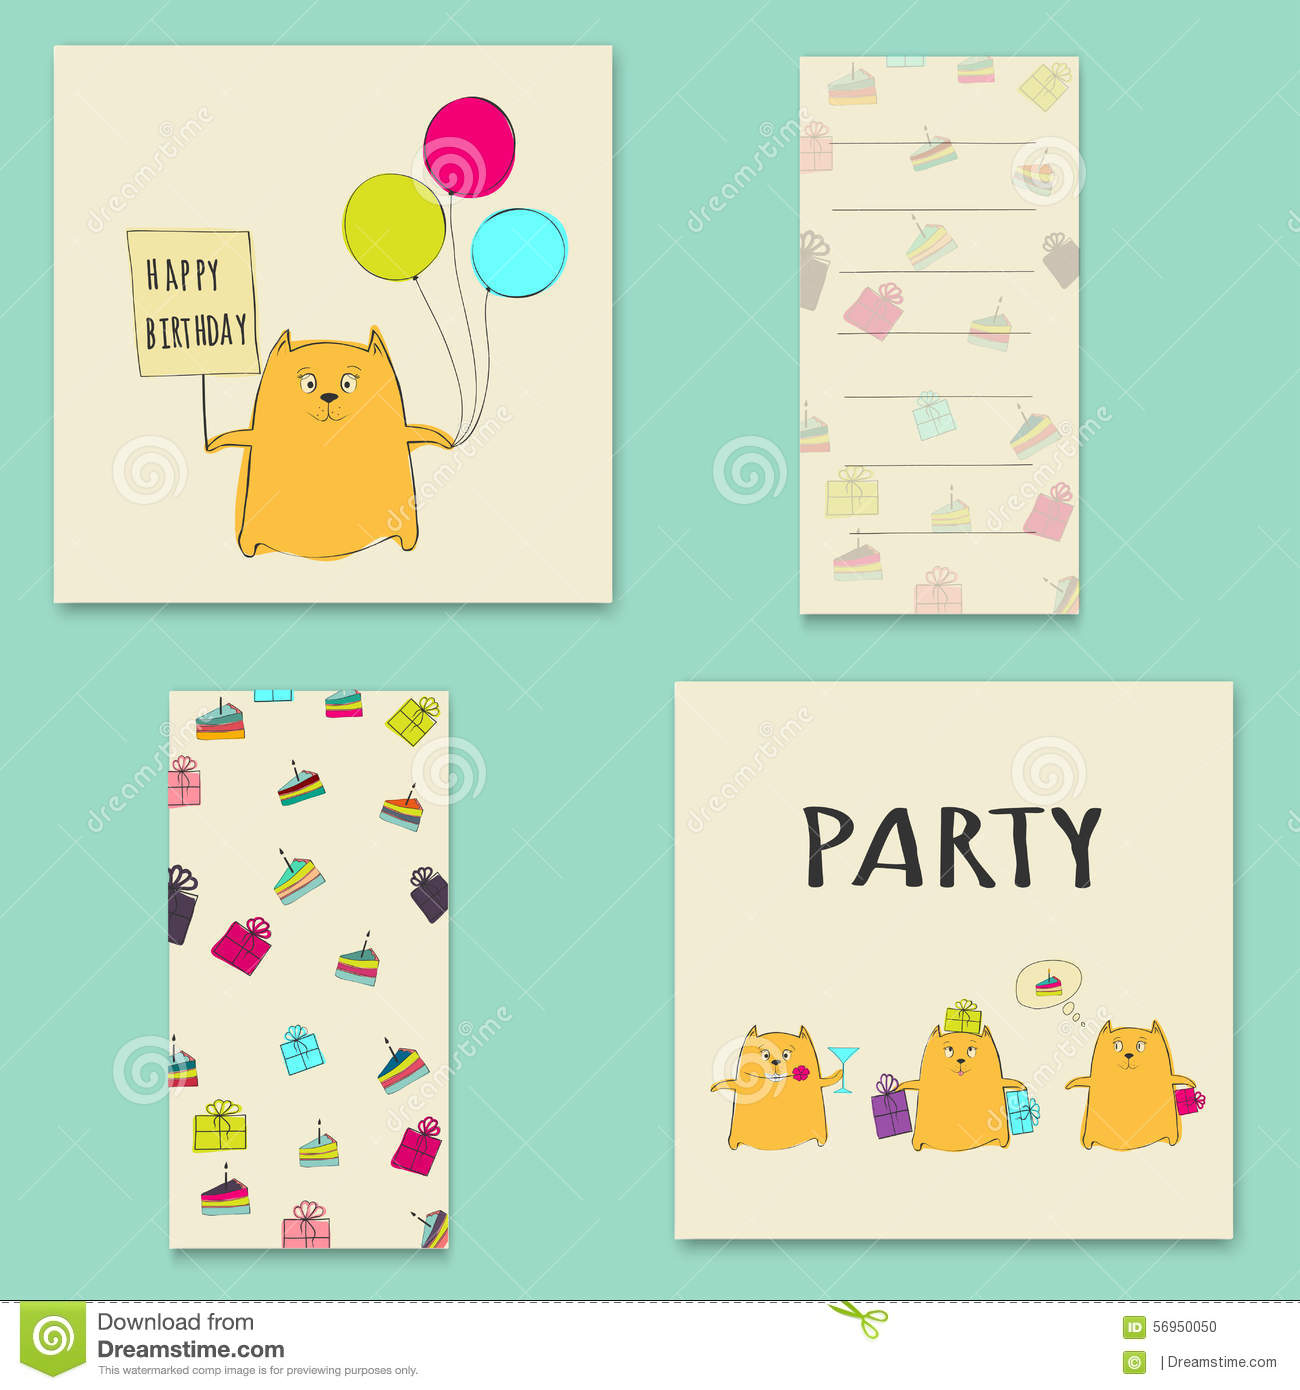 Happy Birthday Card With Balloons Cat And Cake. Stock ...